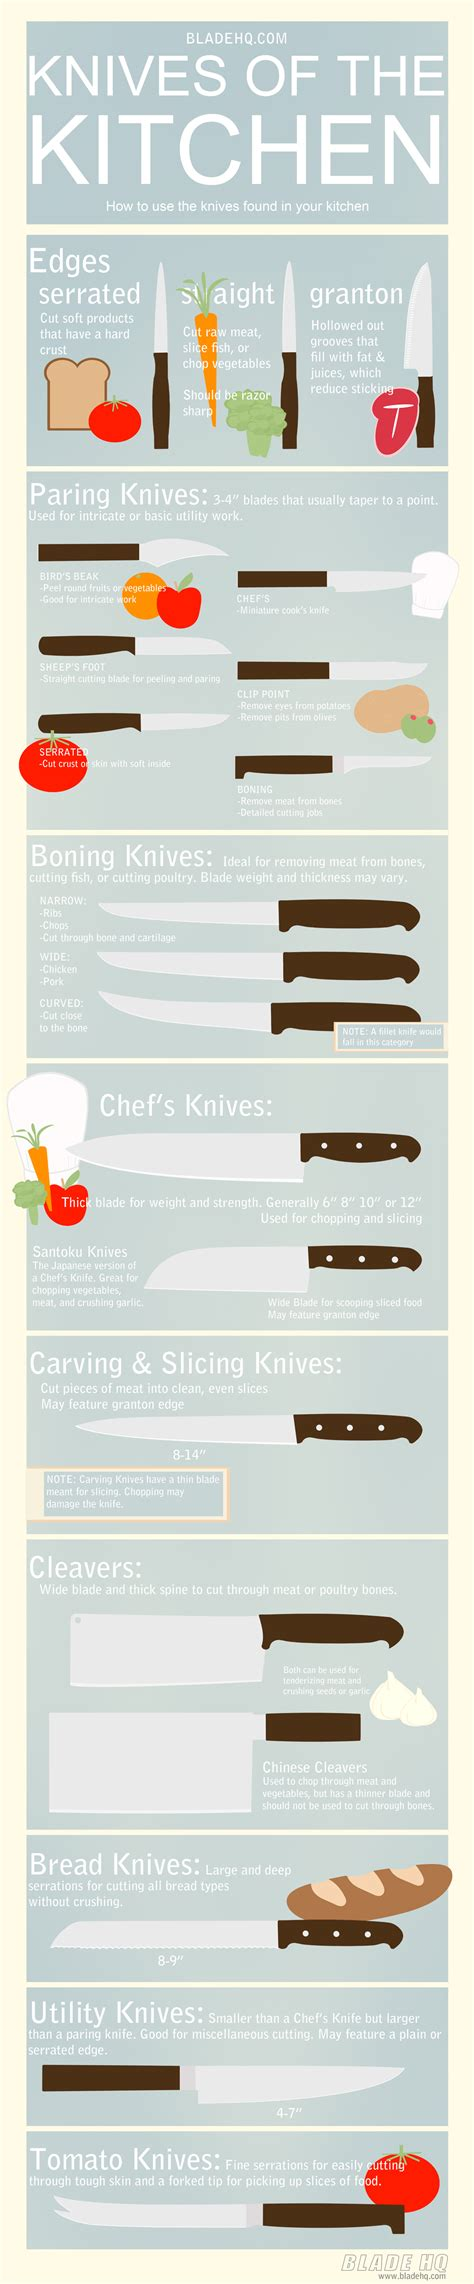 guide to kitchen knives knives of the kitchen infographic infographic list